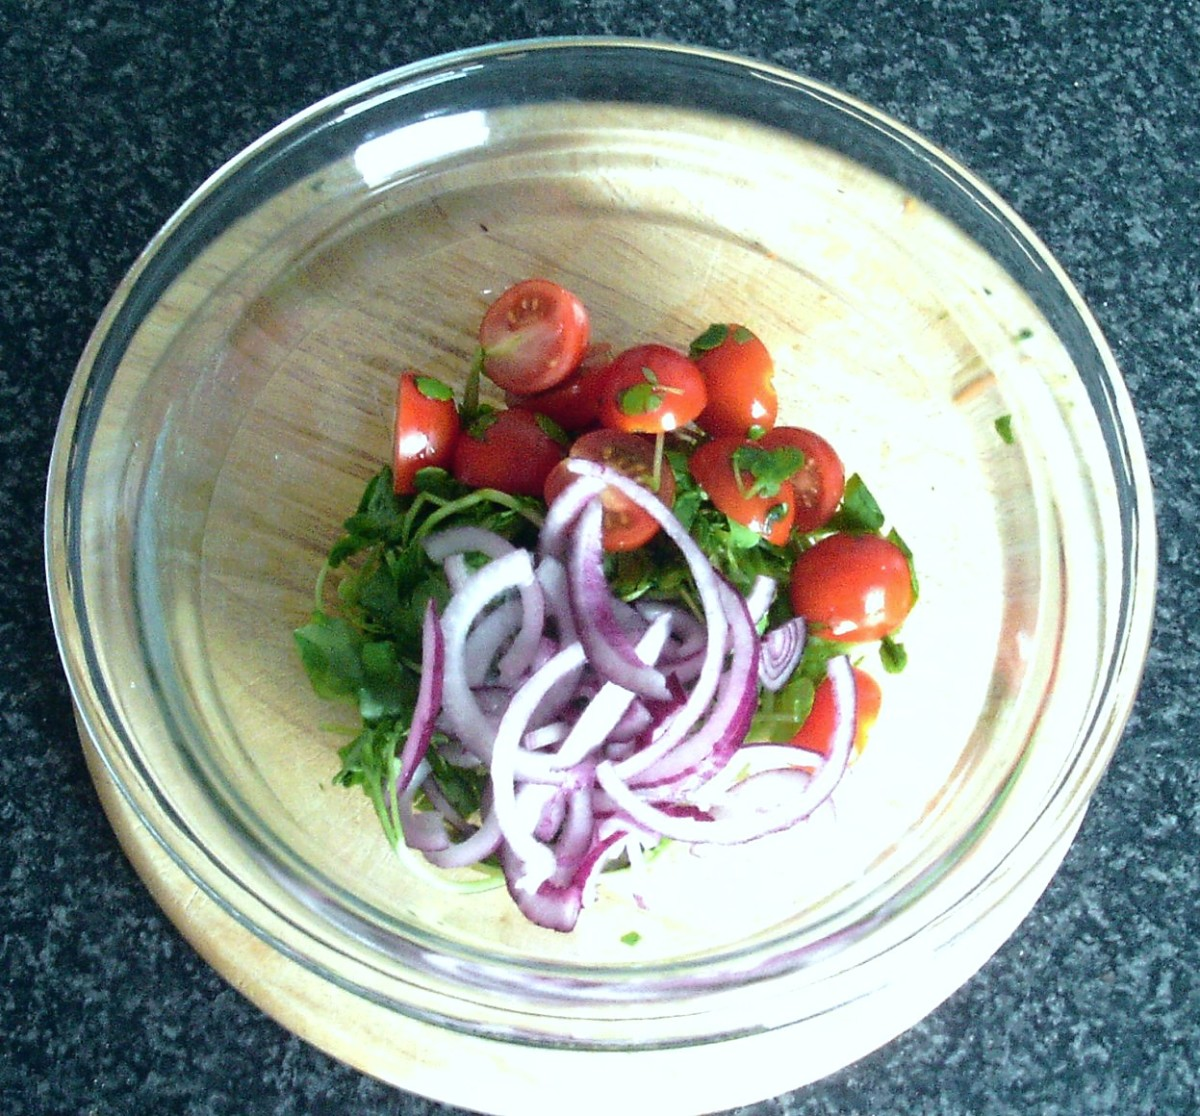 Salad ingredients are combined in a small bowl